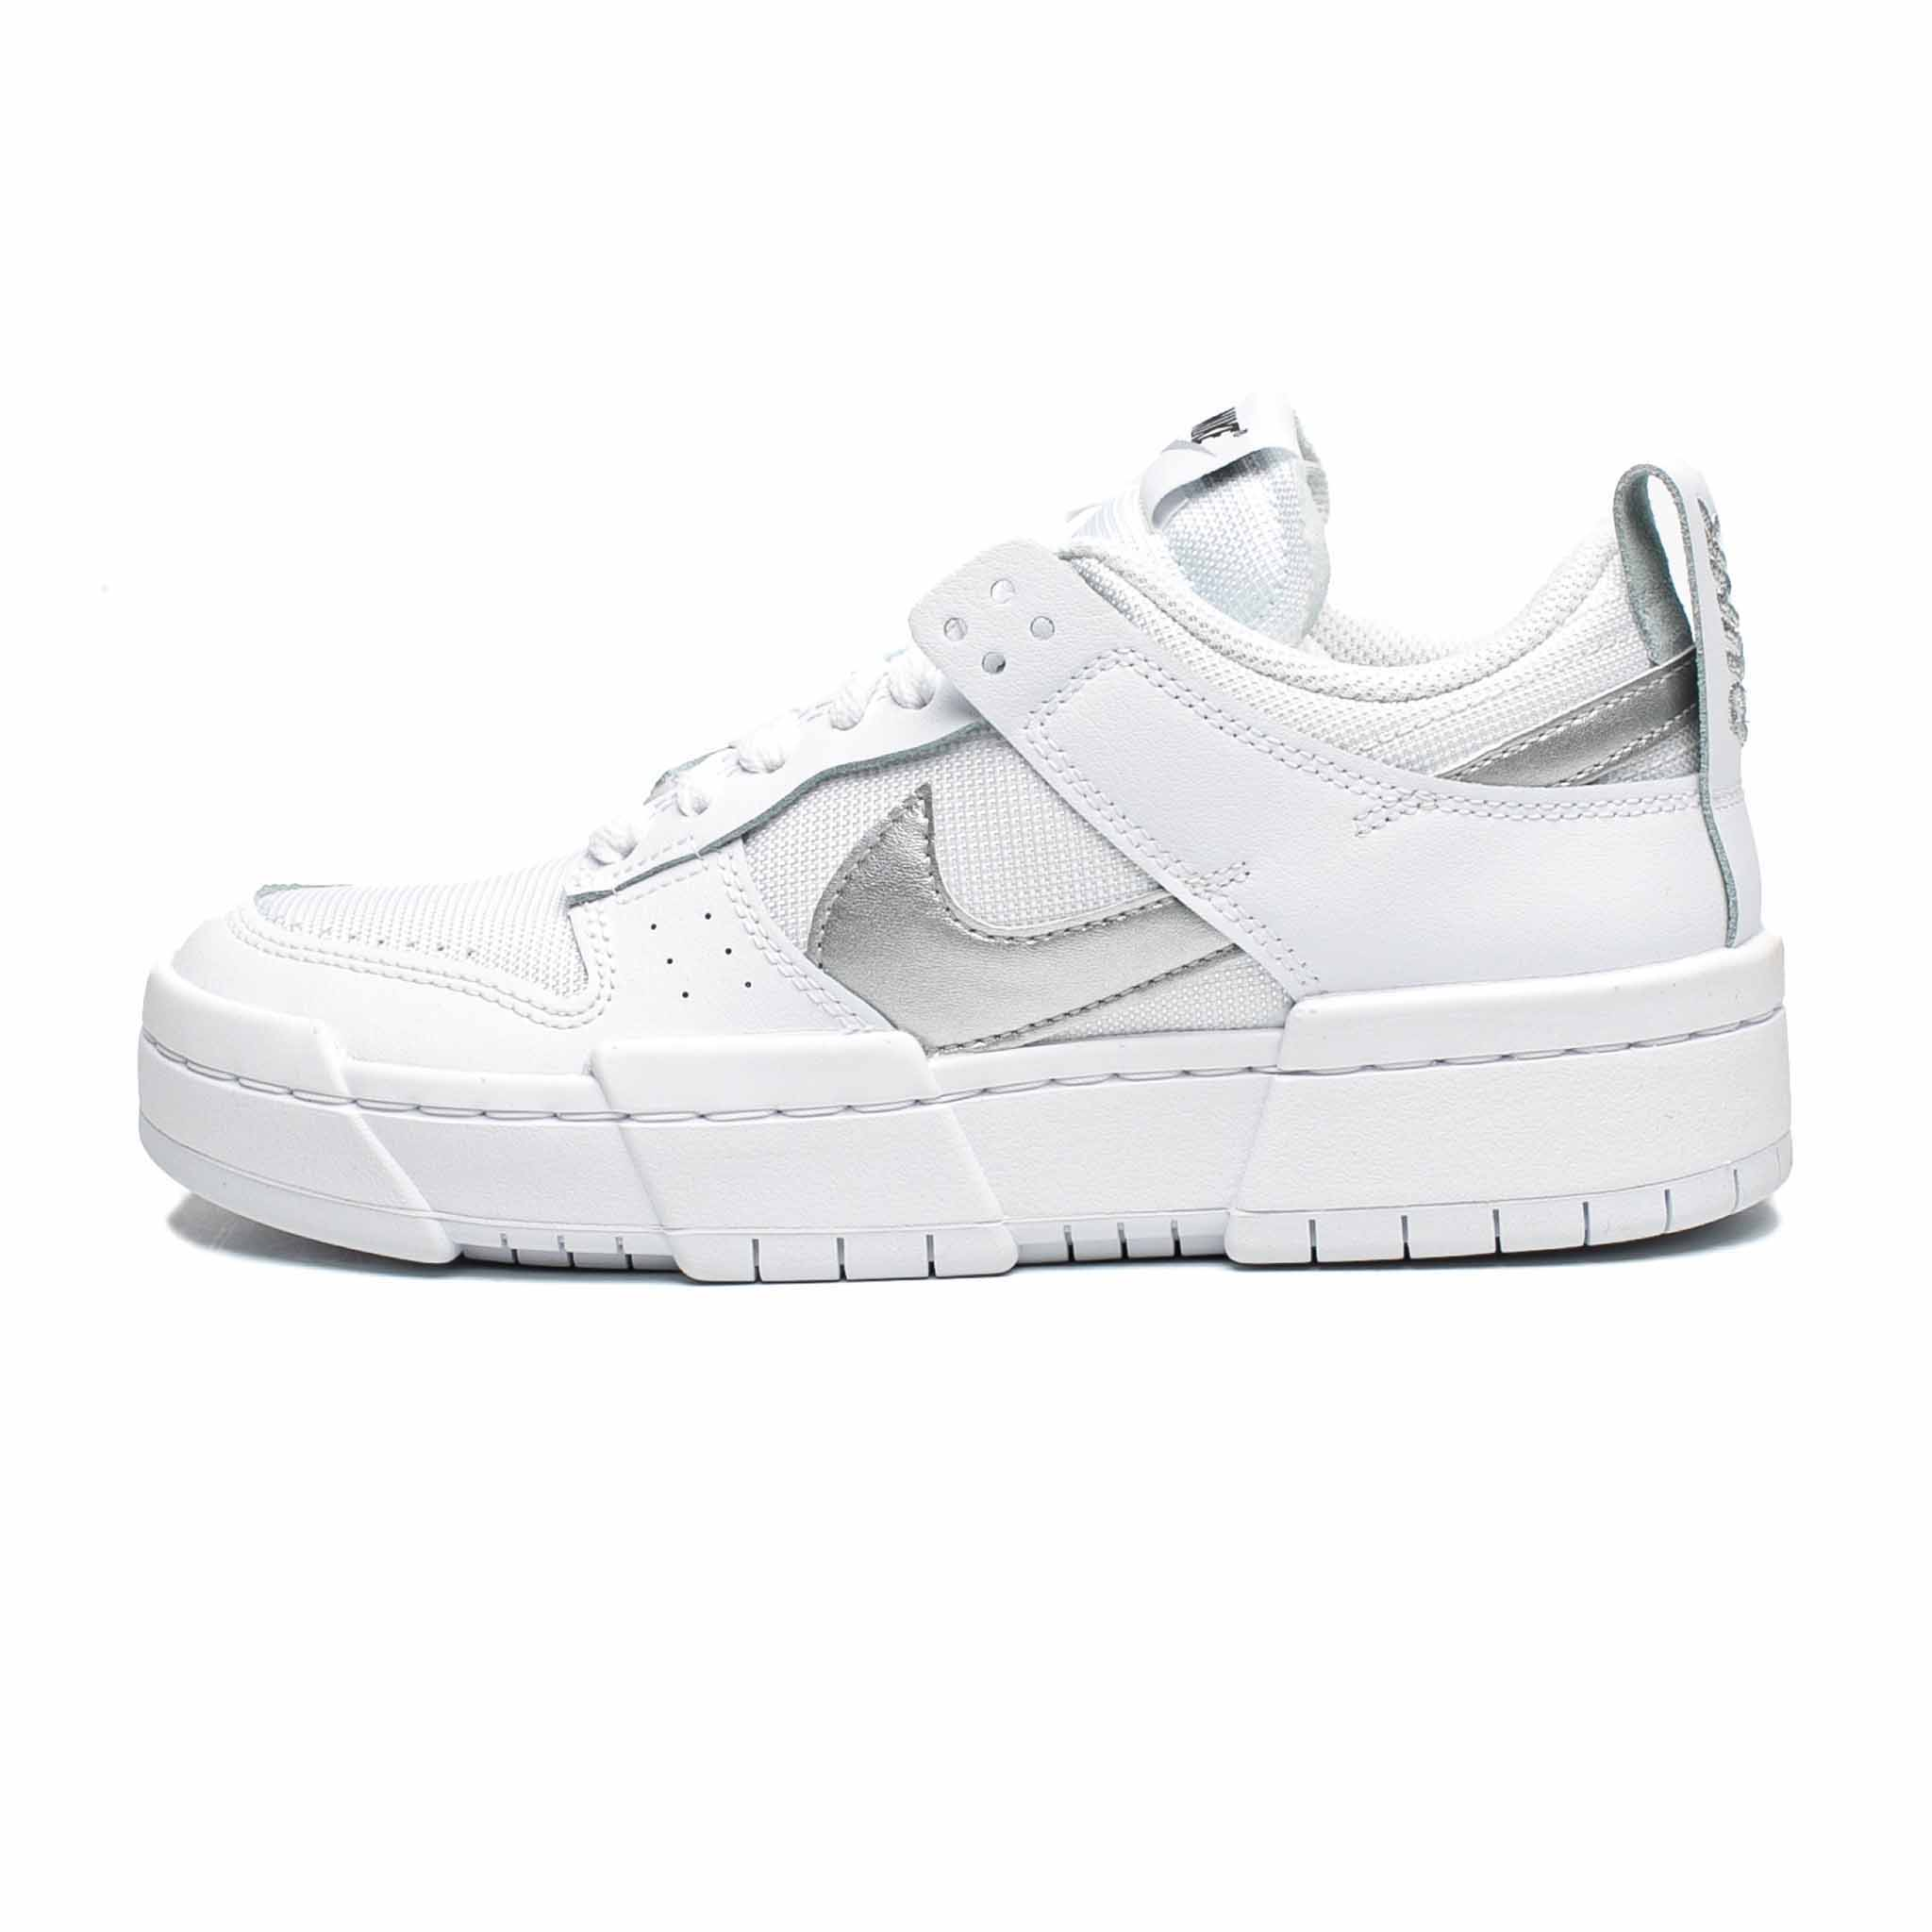 Nike Dunk Low Disrupt 'White/Metallic Silver'